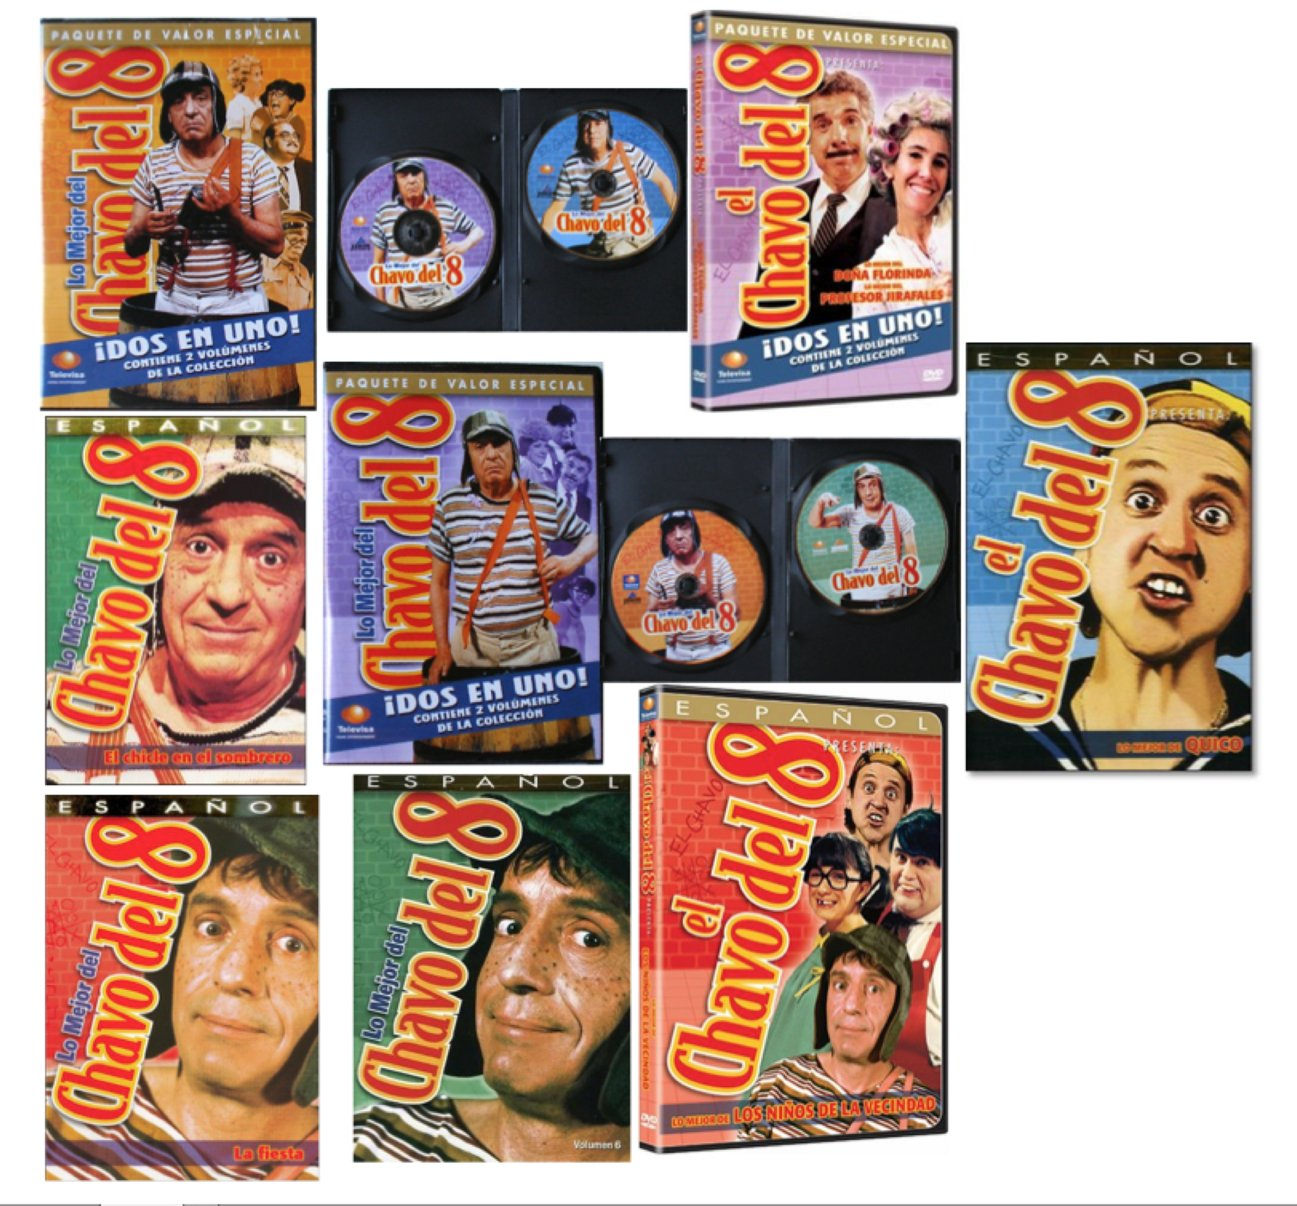 Amazon.com: 11 Different DVDs featuring El CHAVO DEL 8 - New Factory Sealed